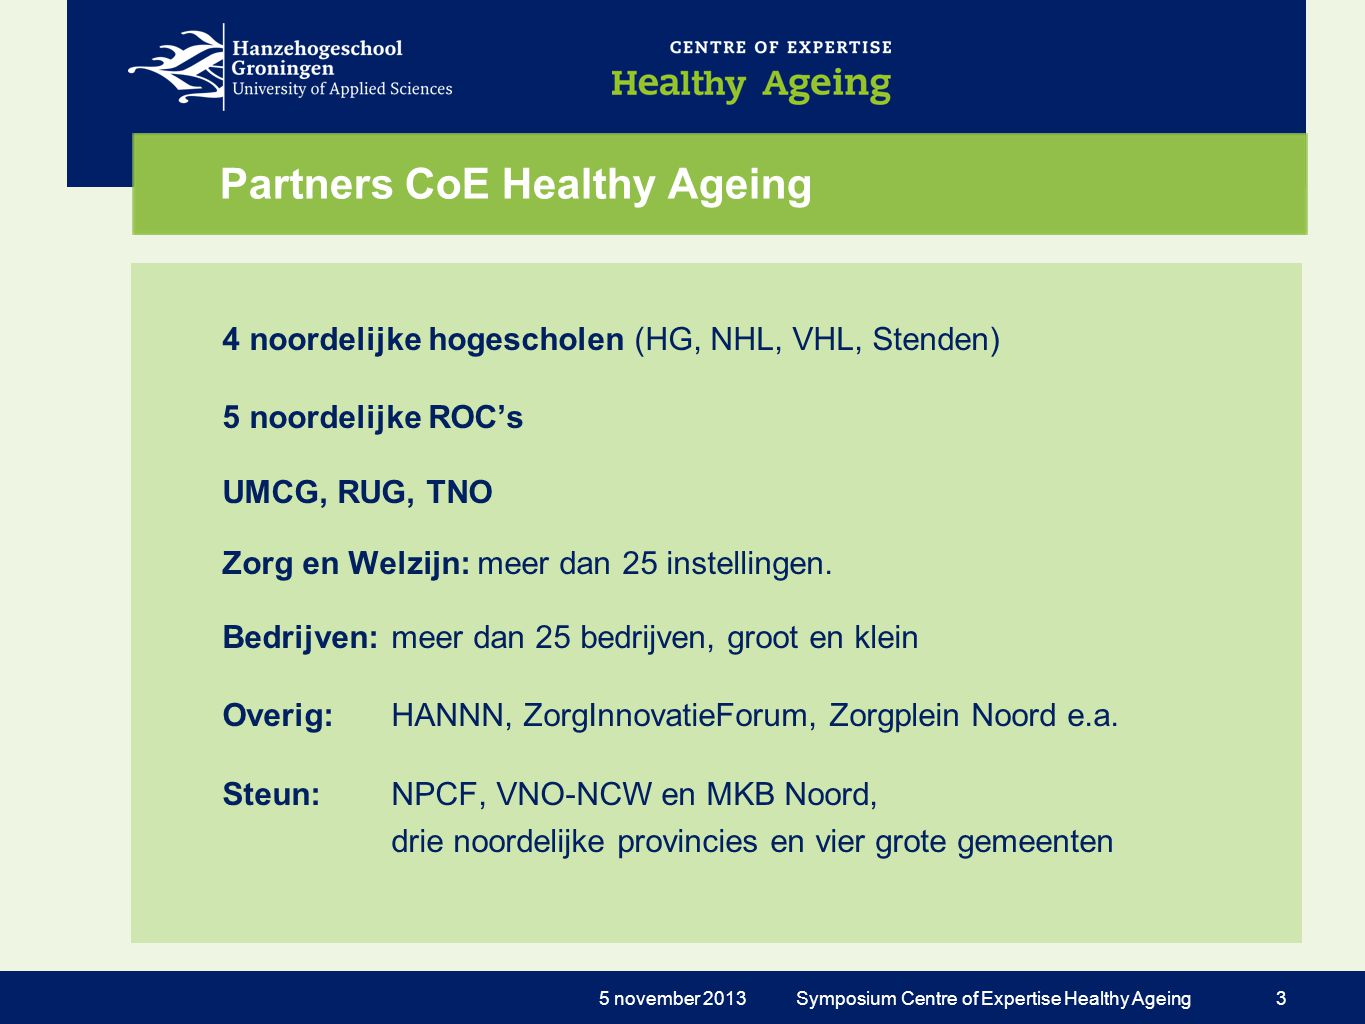 Partners CoE Healthy Ageing